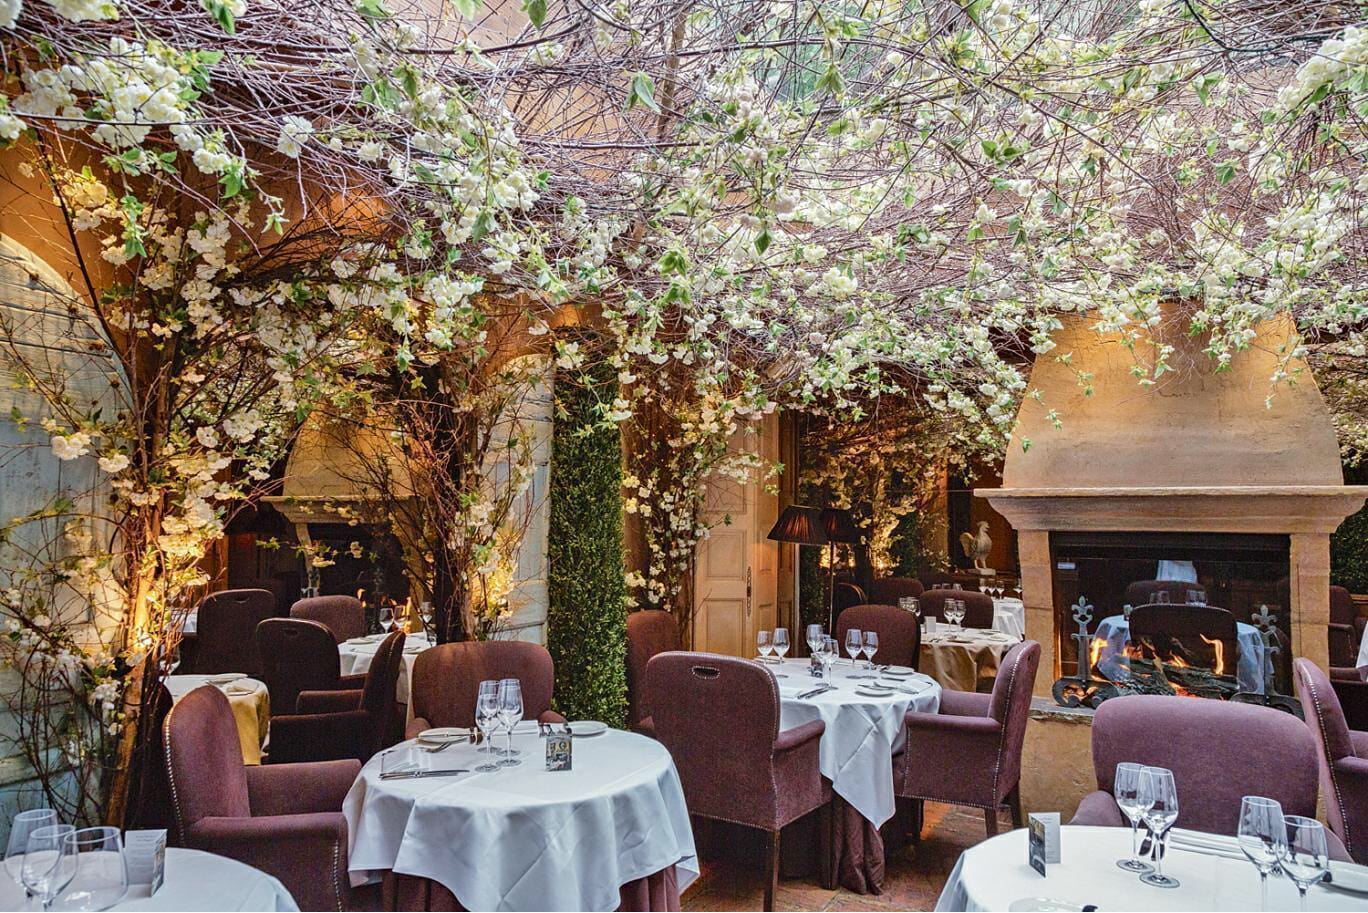 Clos Maggiore romantic restaurants London